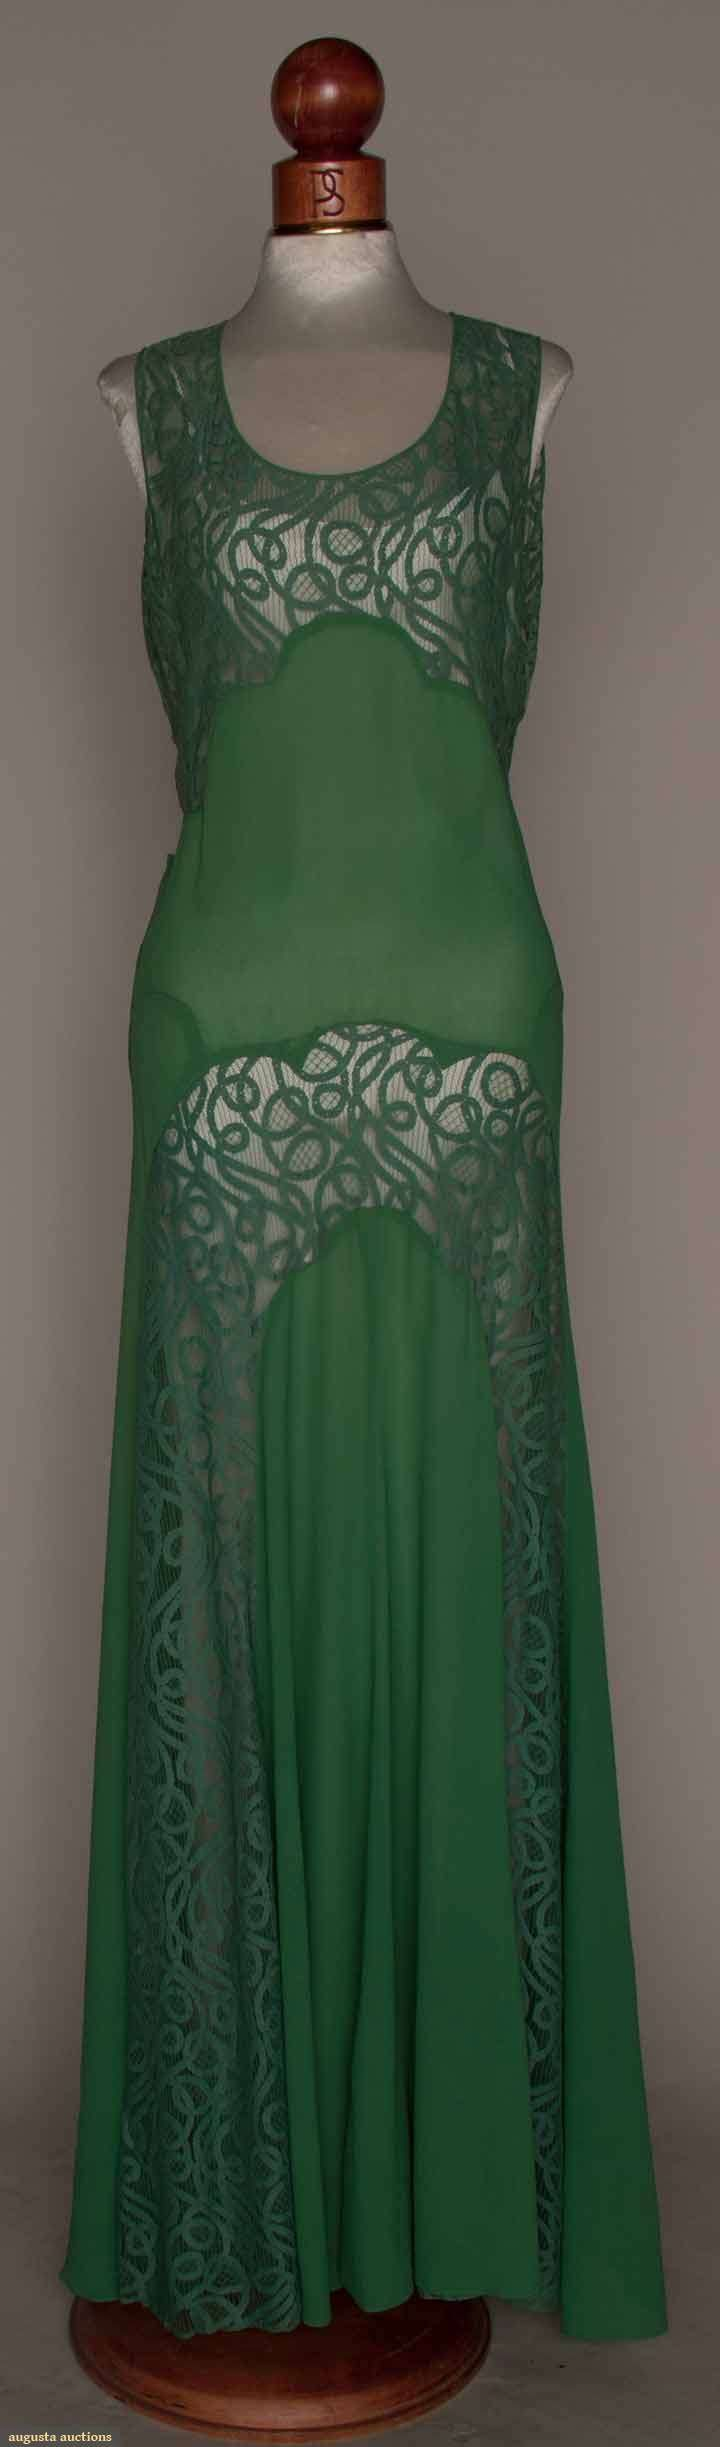 Augusta, GREEN SILK & LACE GOWN, MID 1930s